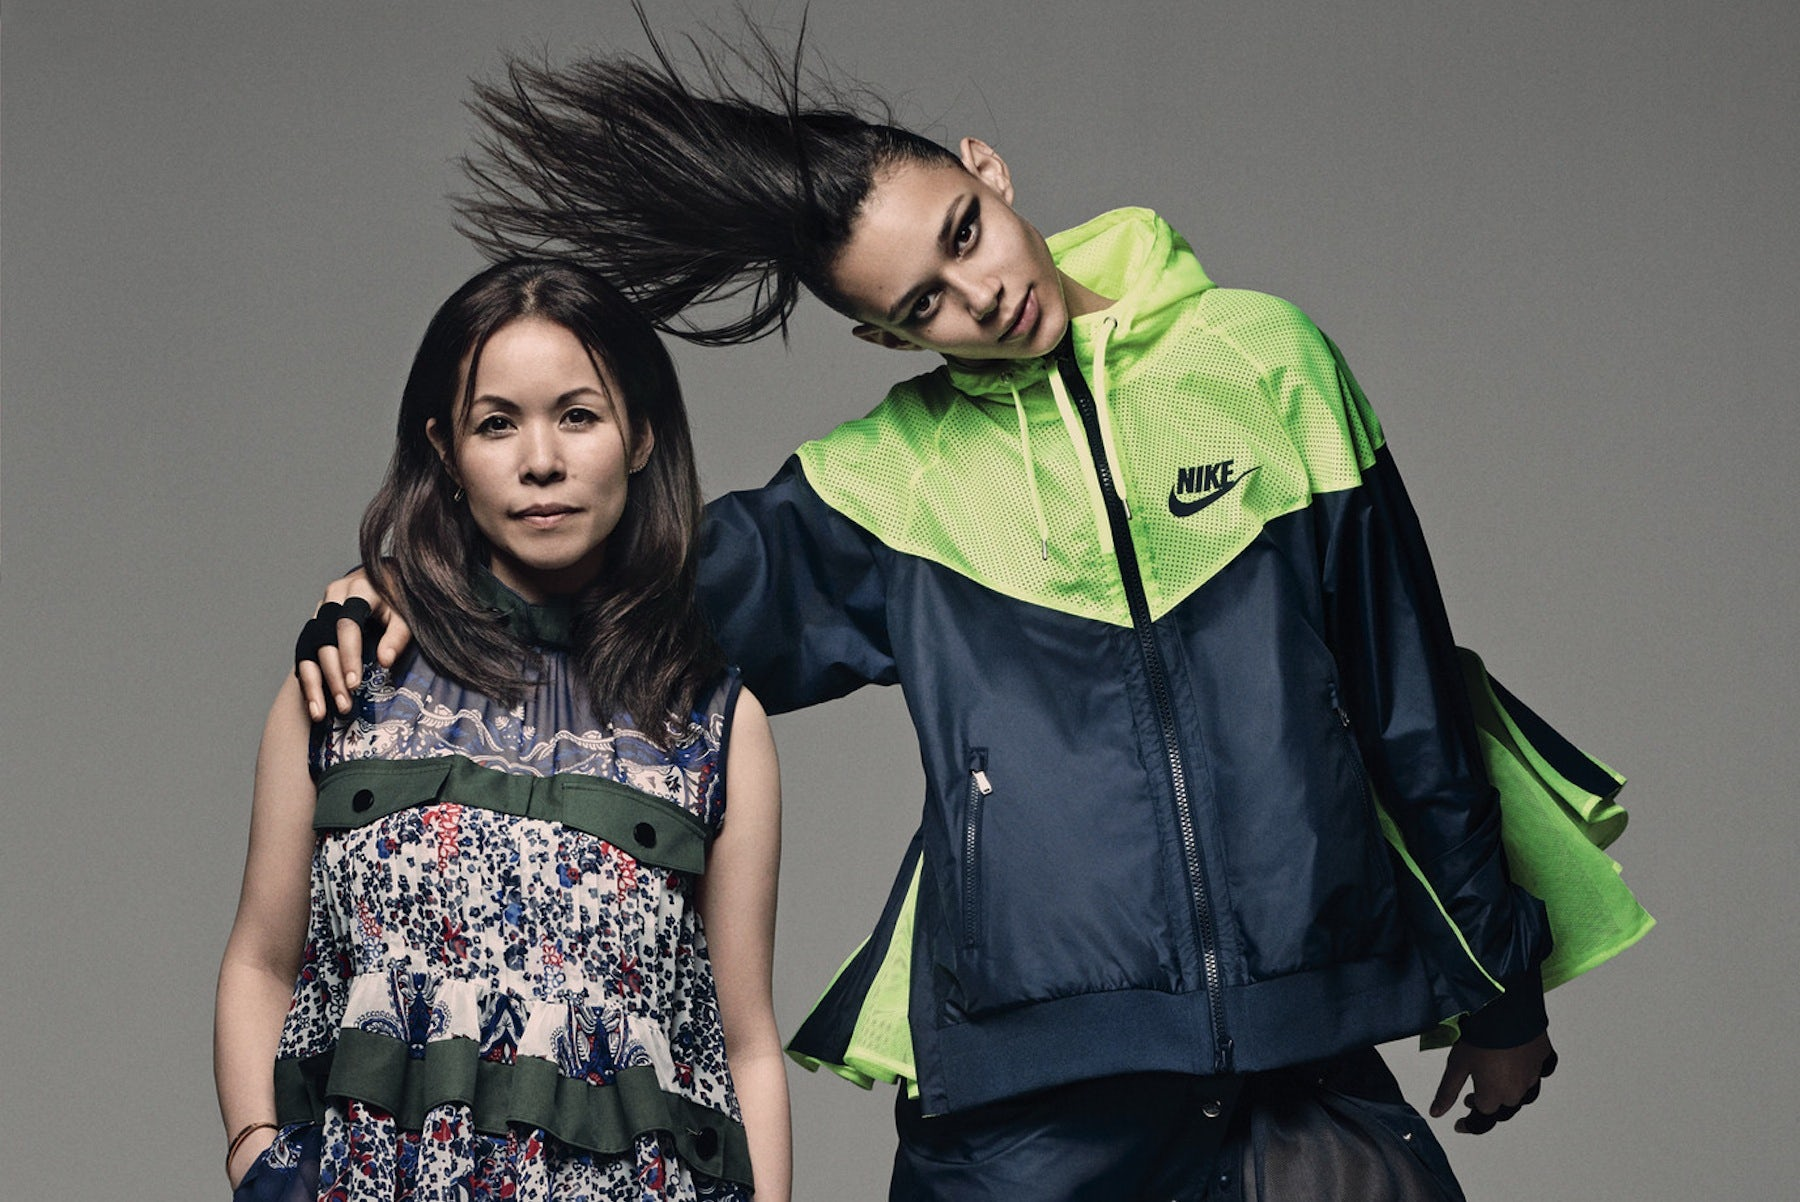 Sacai designer Chitose Abe with model Binx Walton wearing Nike x Sacai | Photo: Craig McDean